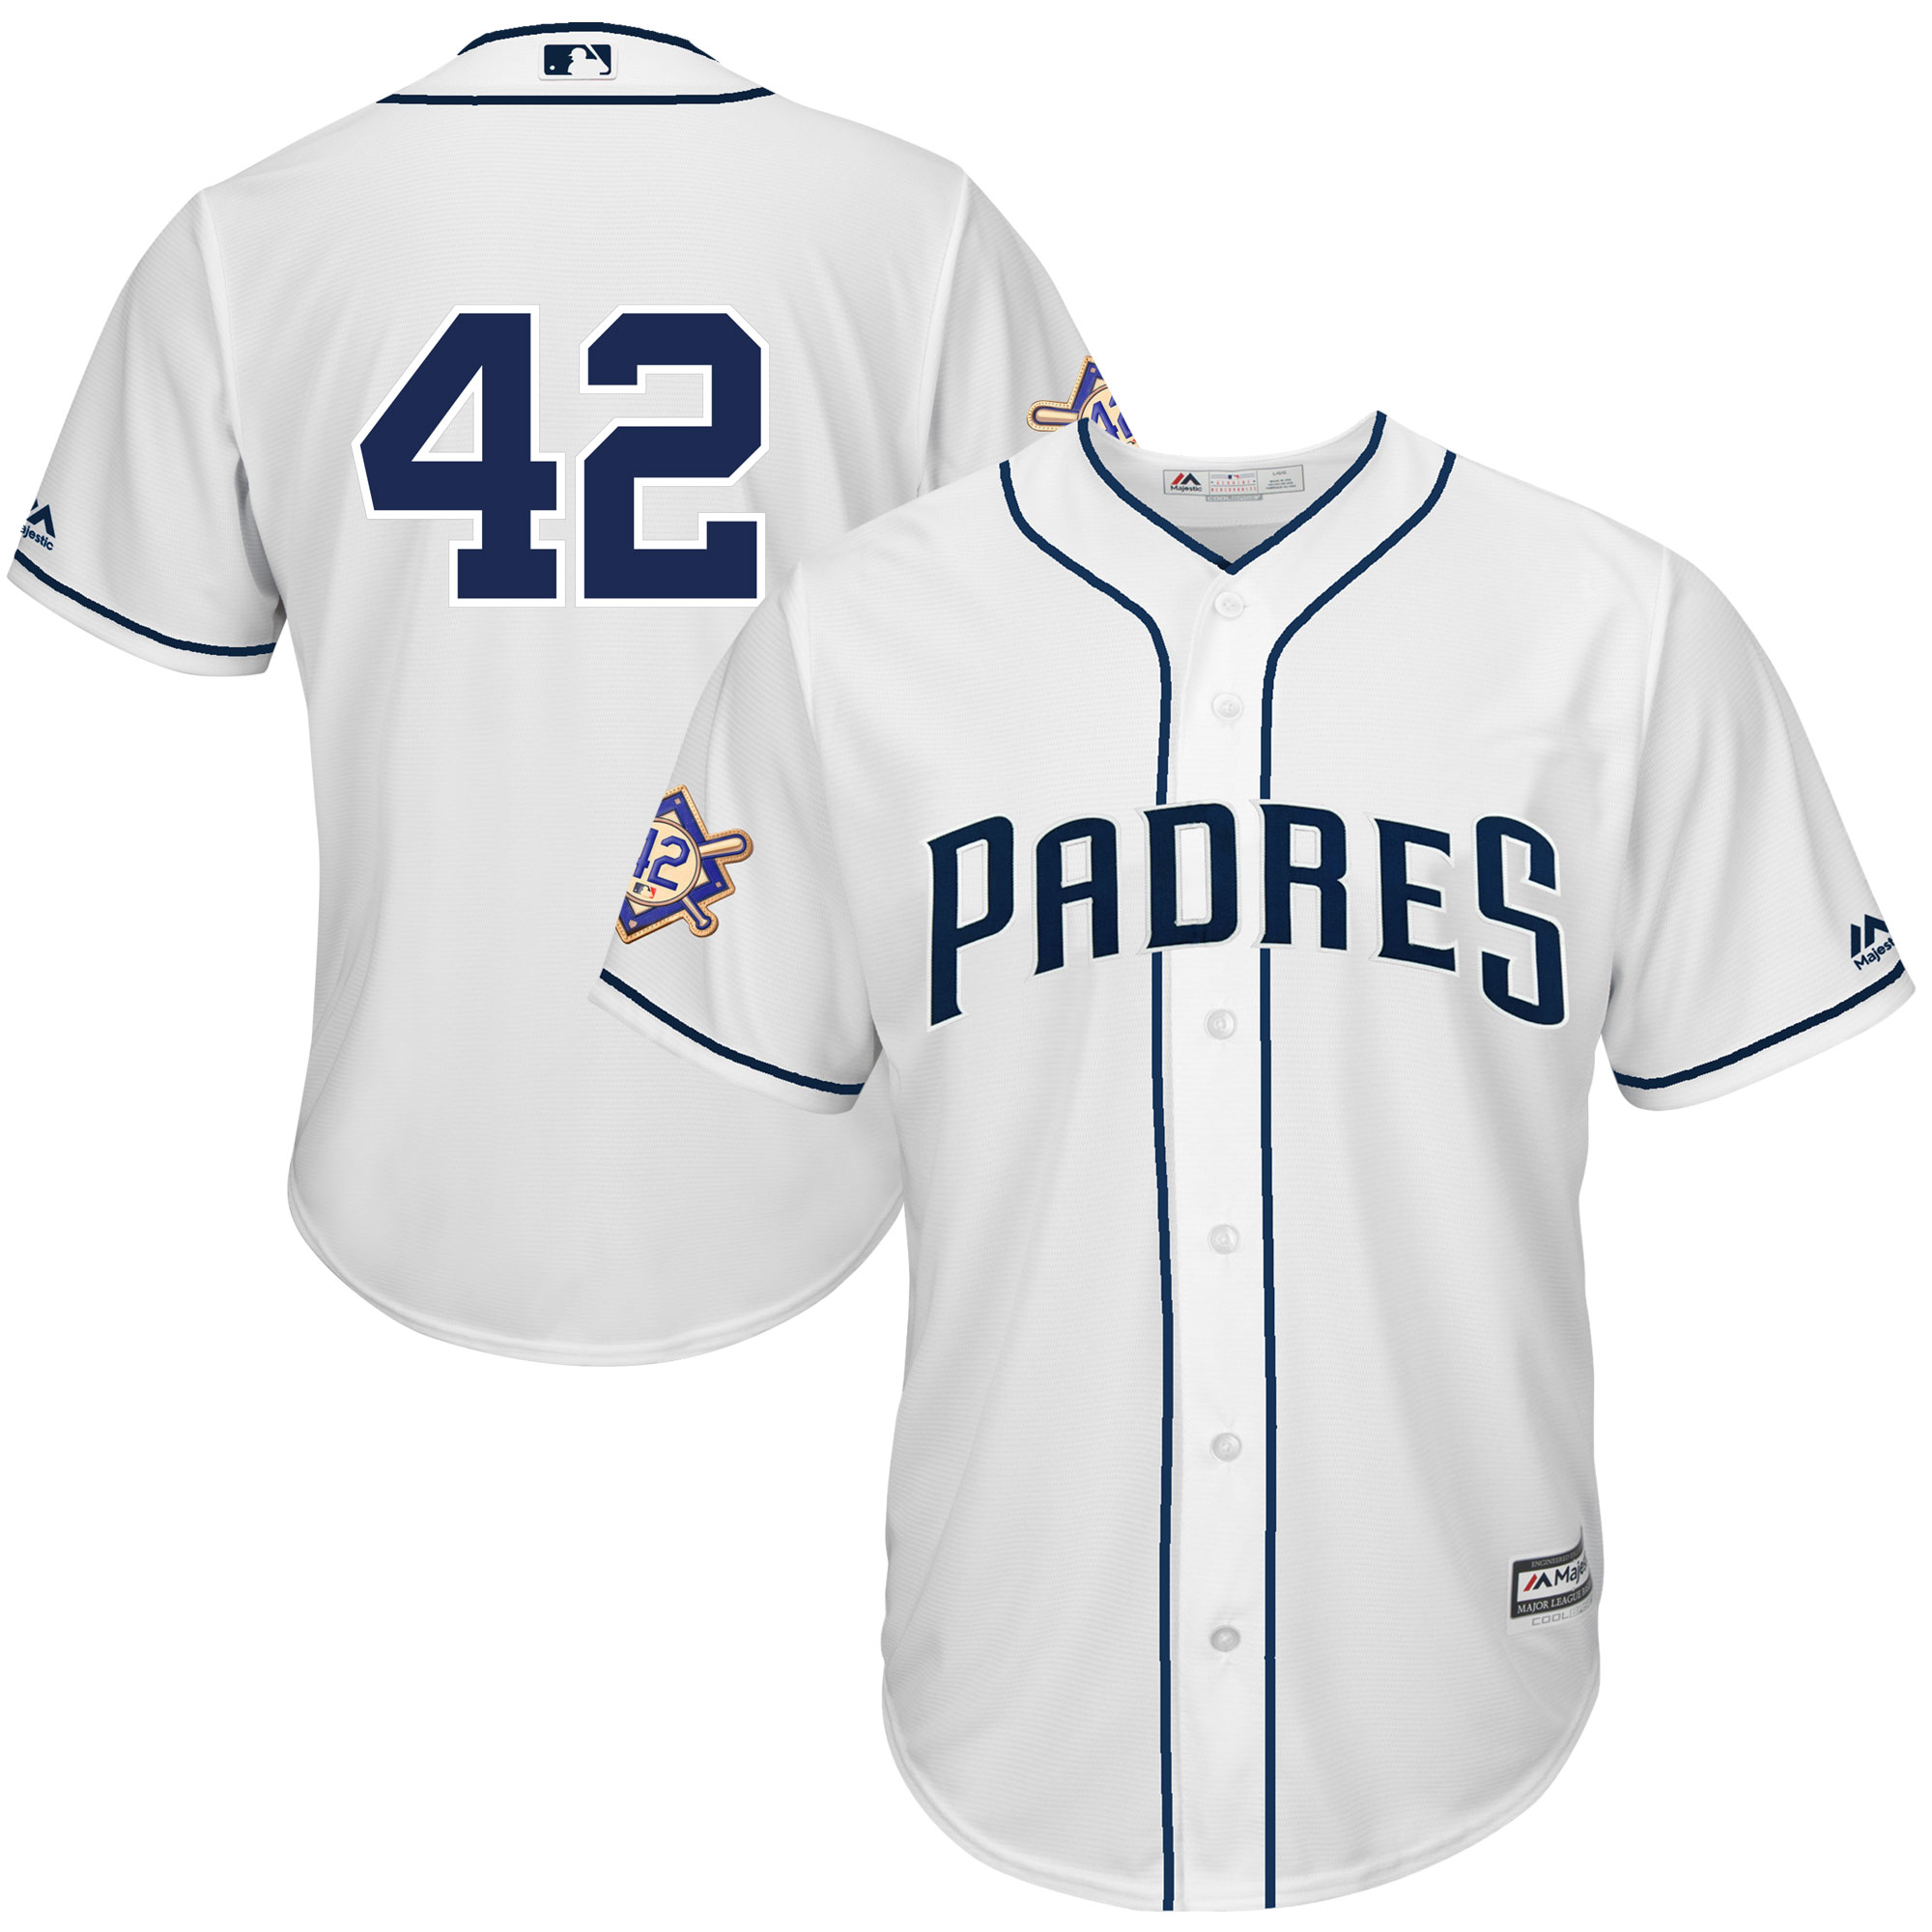 San Diego Padres Majestic 2019 Jackie Robinson Day Official Cool Base Jersey - White